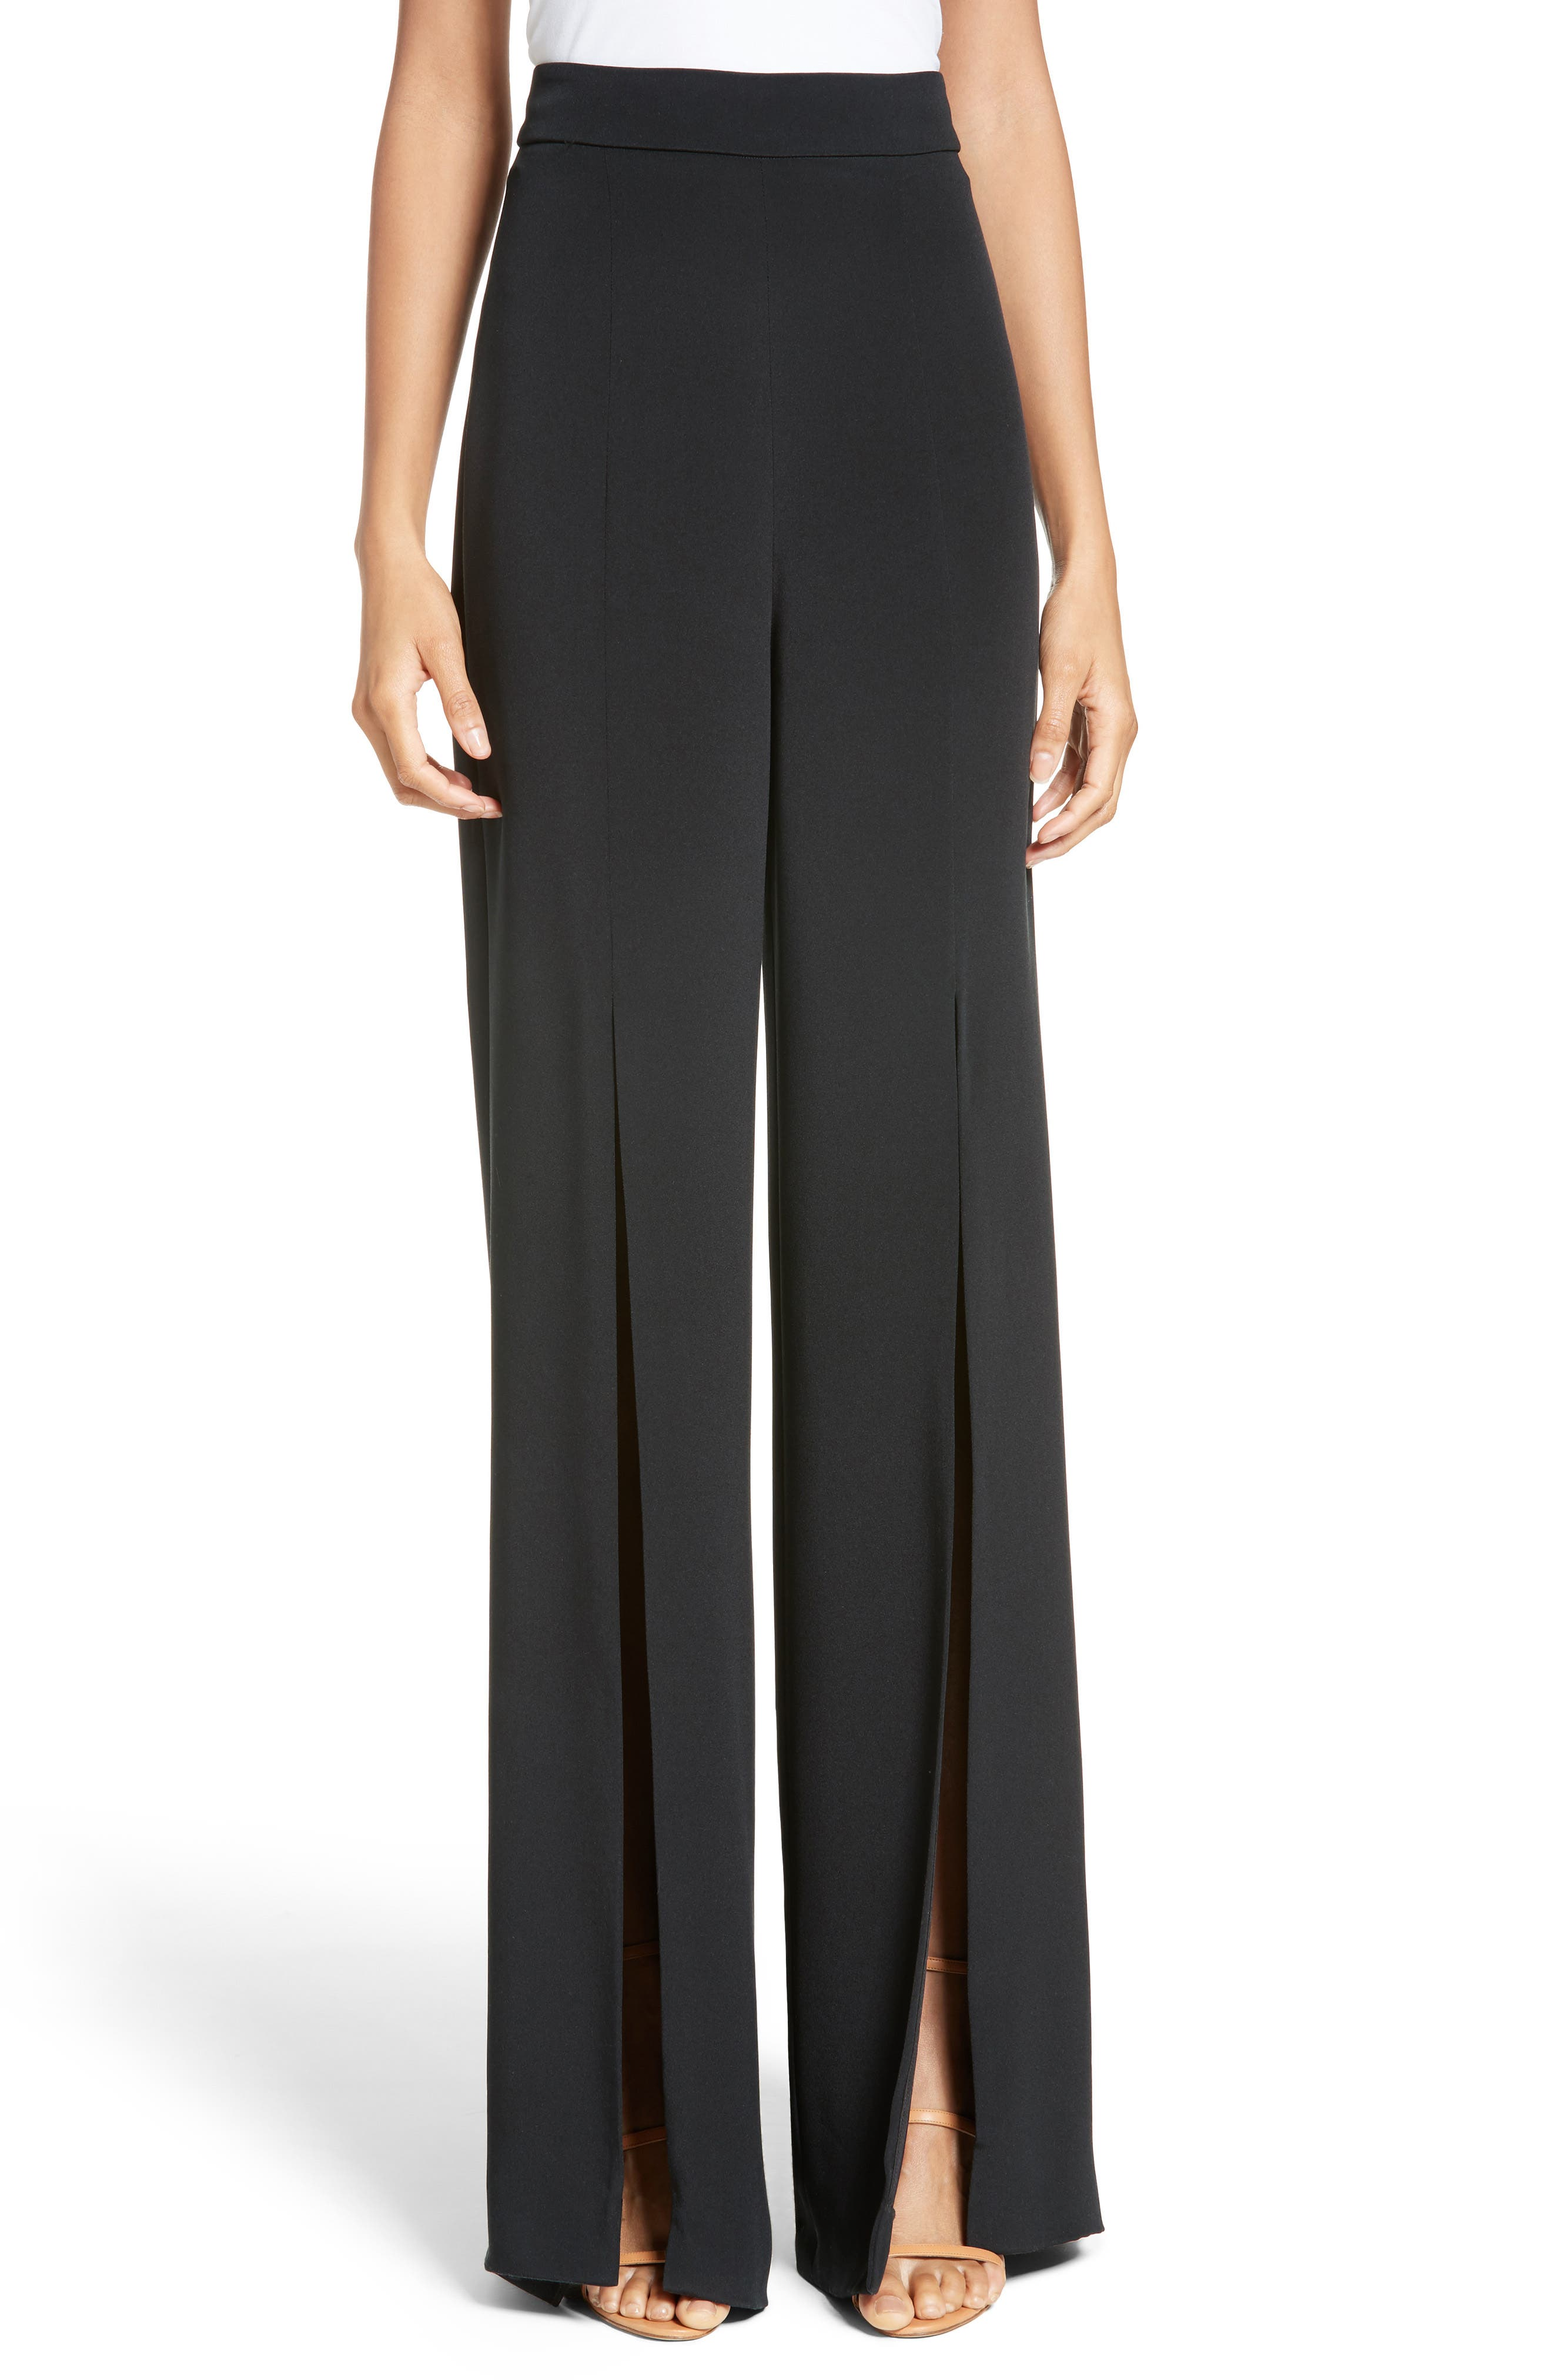 Slit Silk High Waisted Pants,                             Main thumbnail 1, color,                             Black